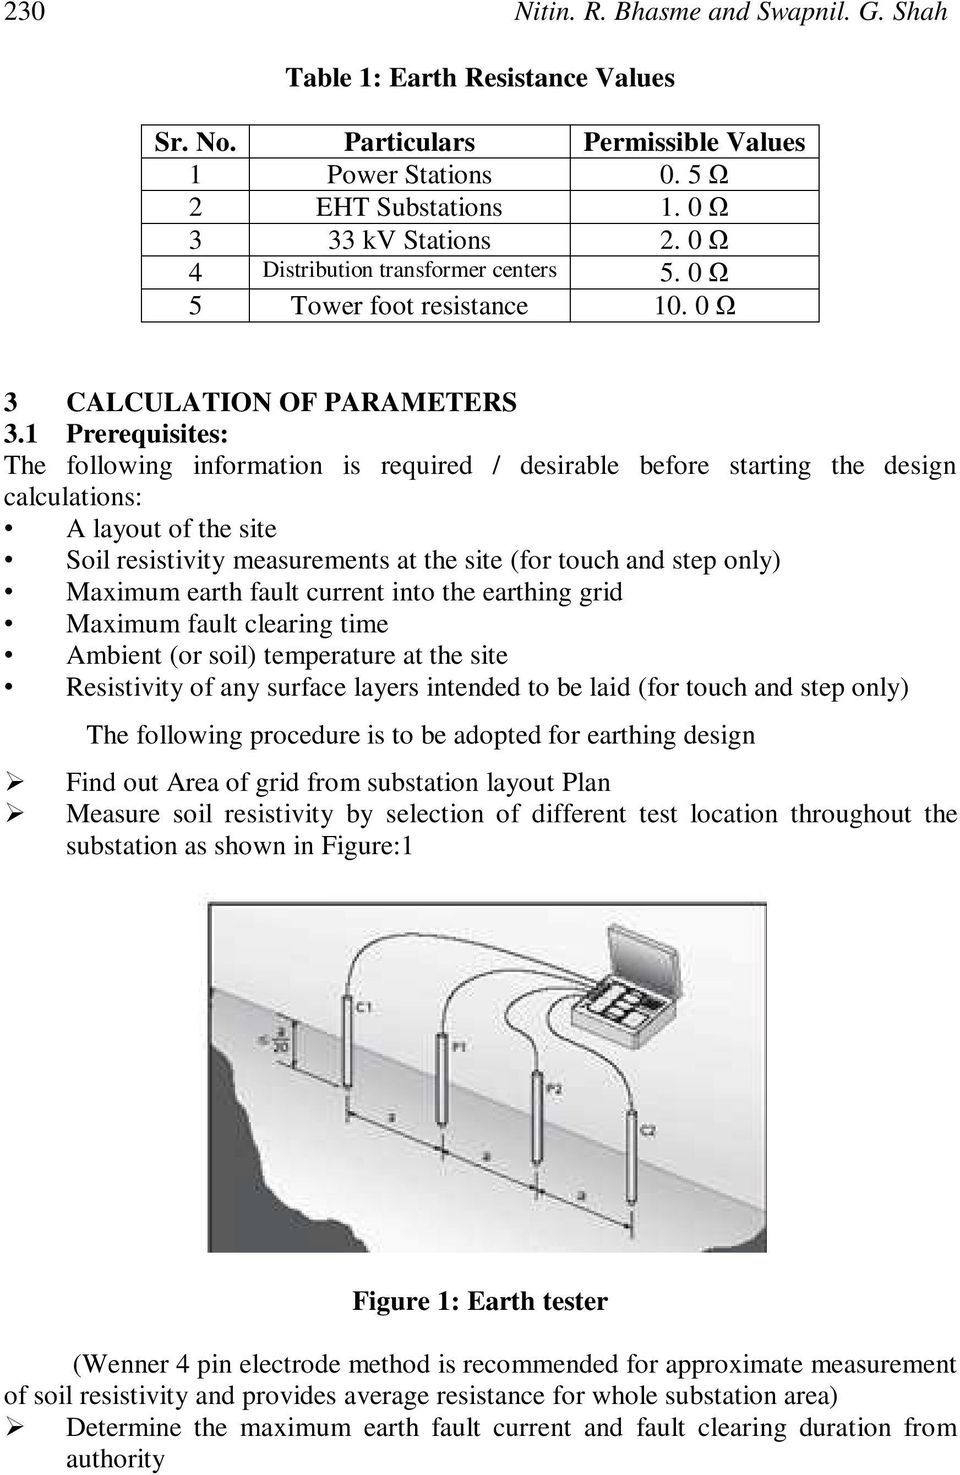 Switchyard Design Calculation